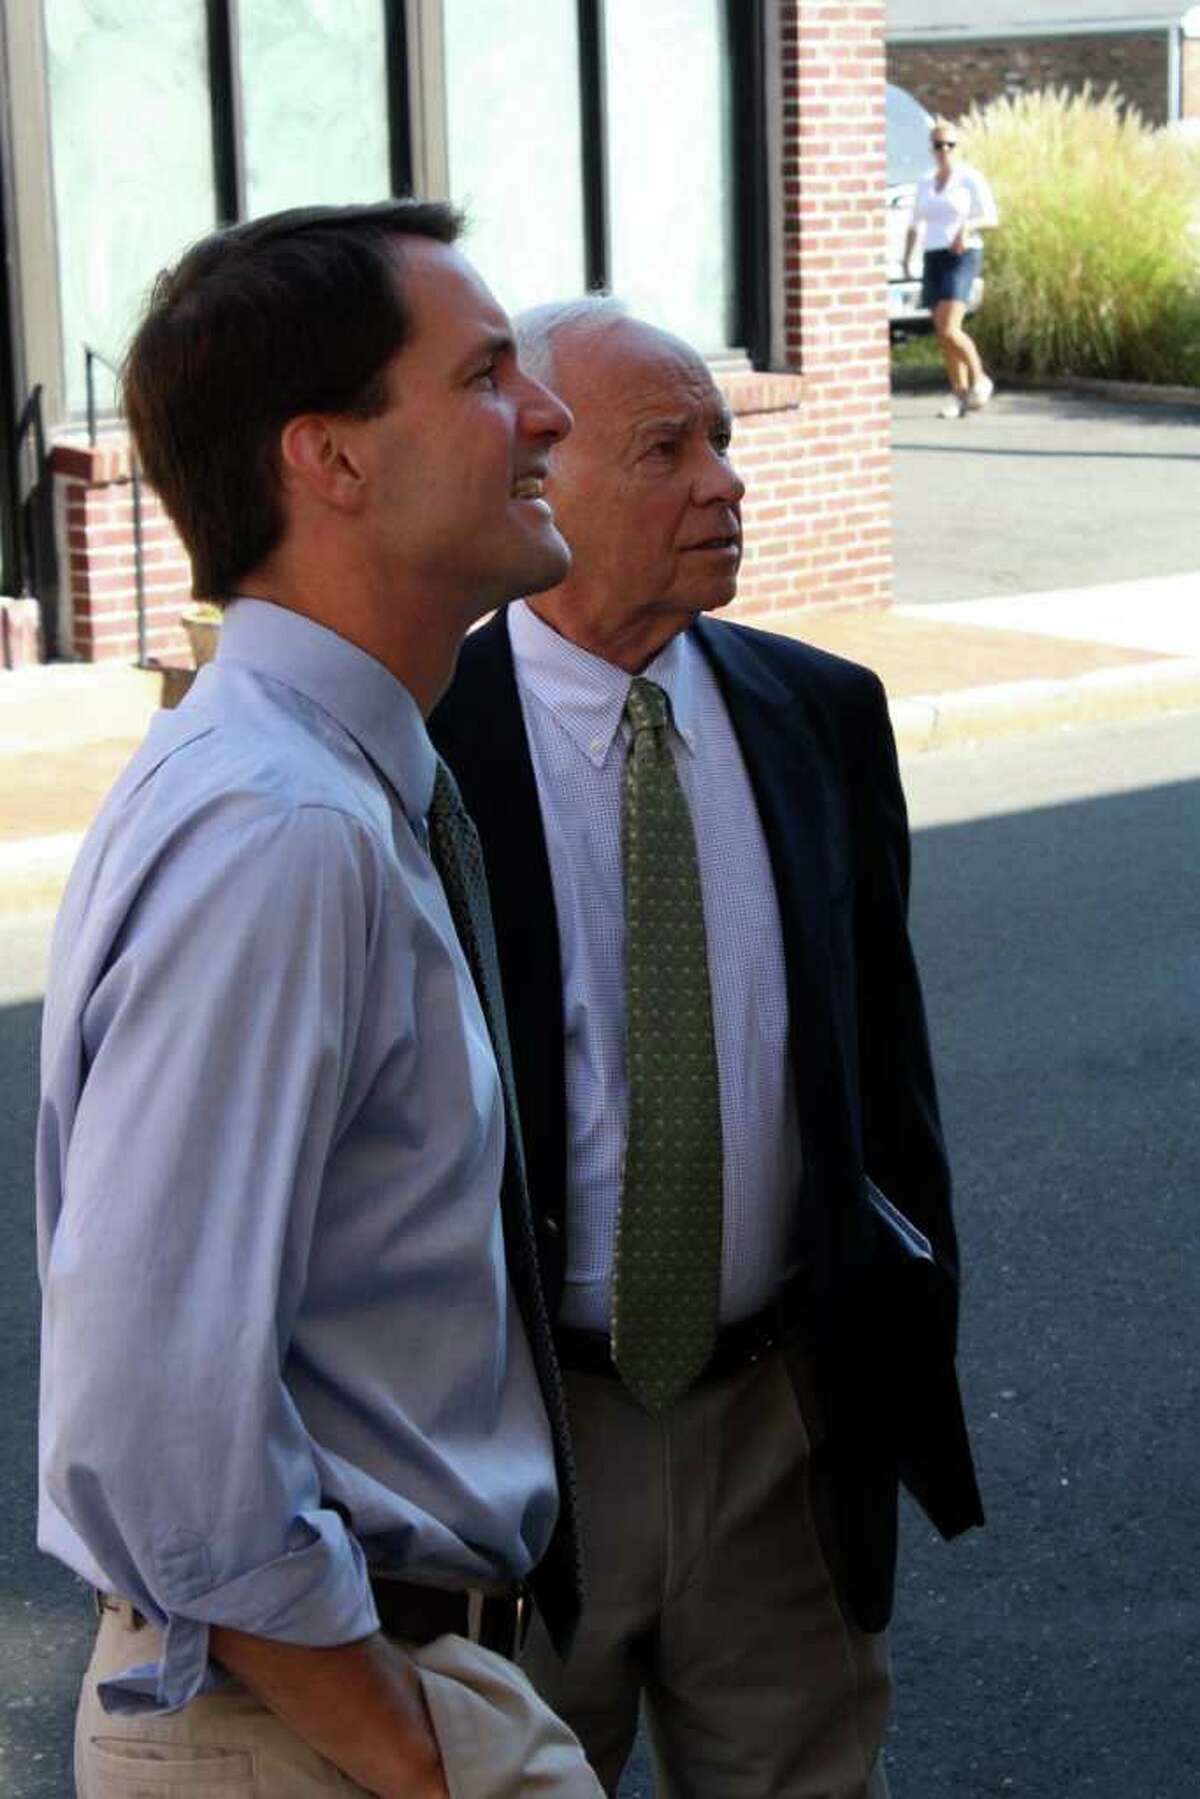 Rep. Jim Himes and First Selectman Jeb Walker toured businesses on Elm Street early Tuesday morning.